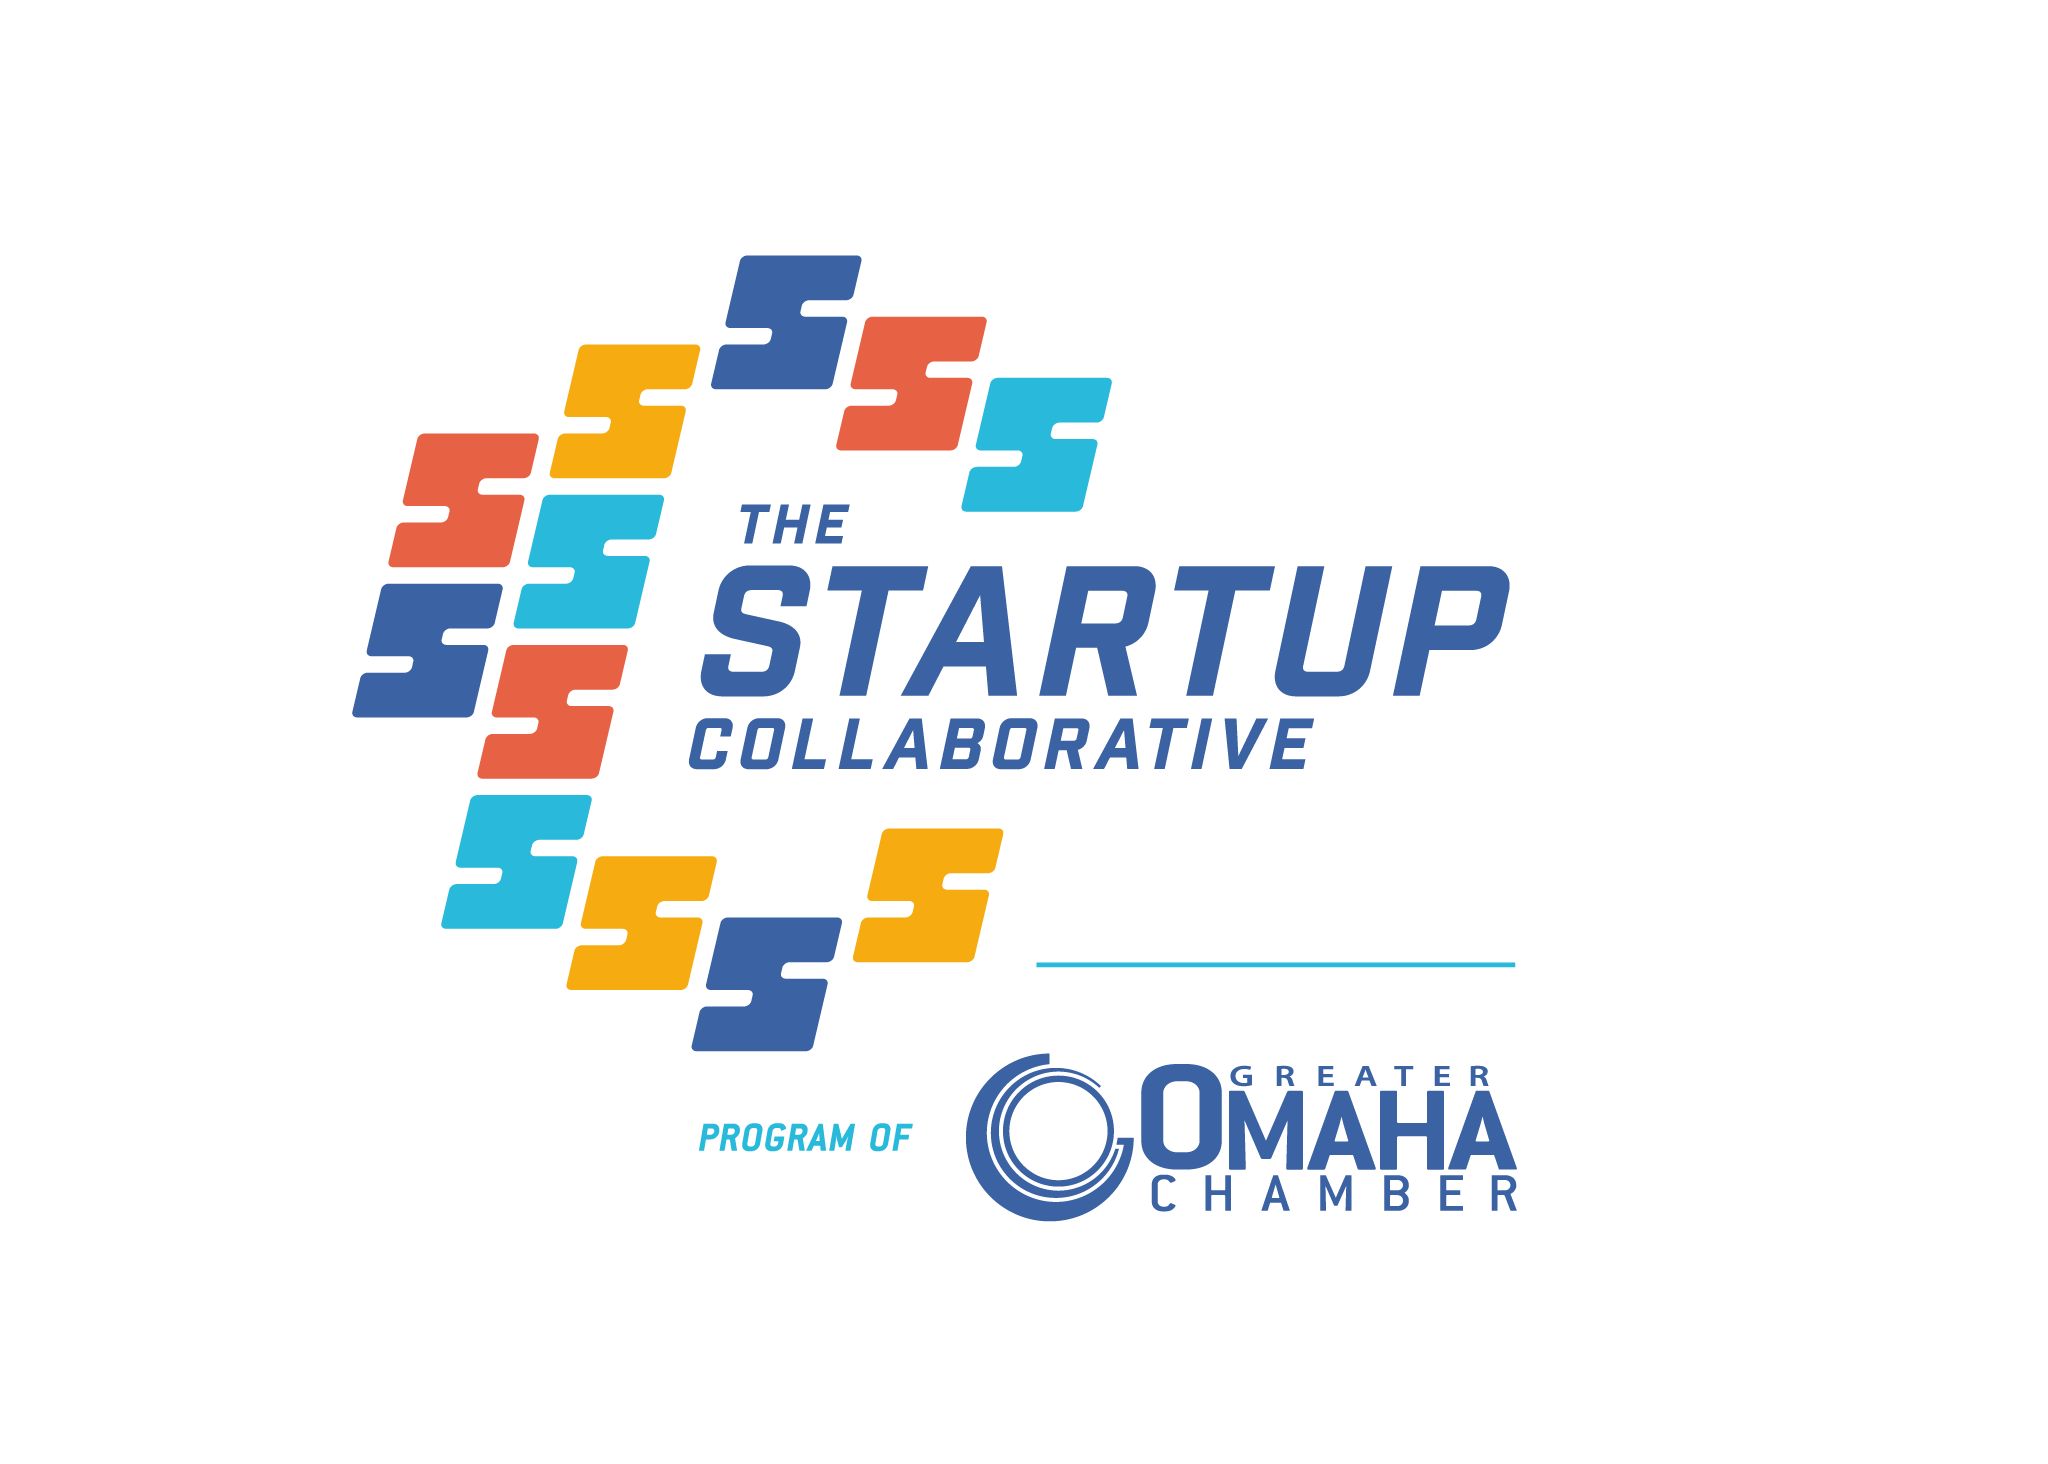 Chamber of Omaha Startup Collaborative